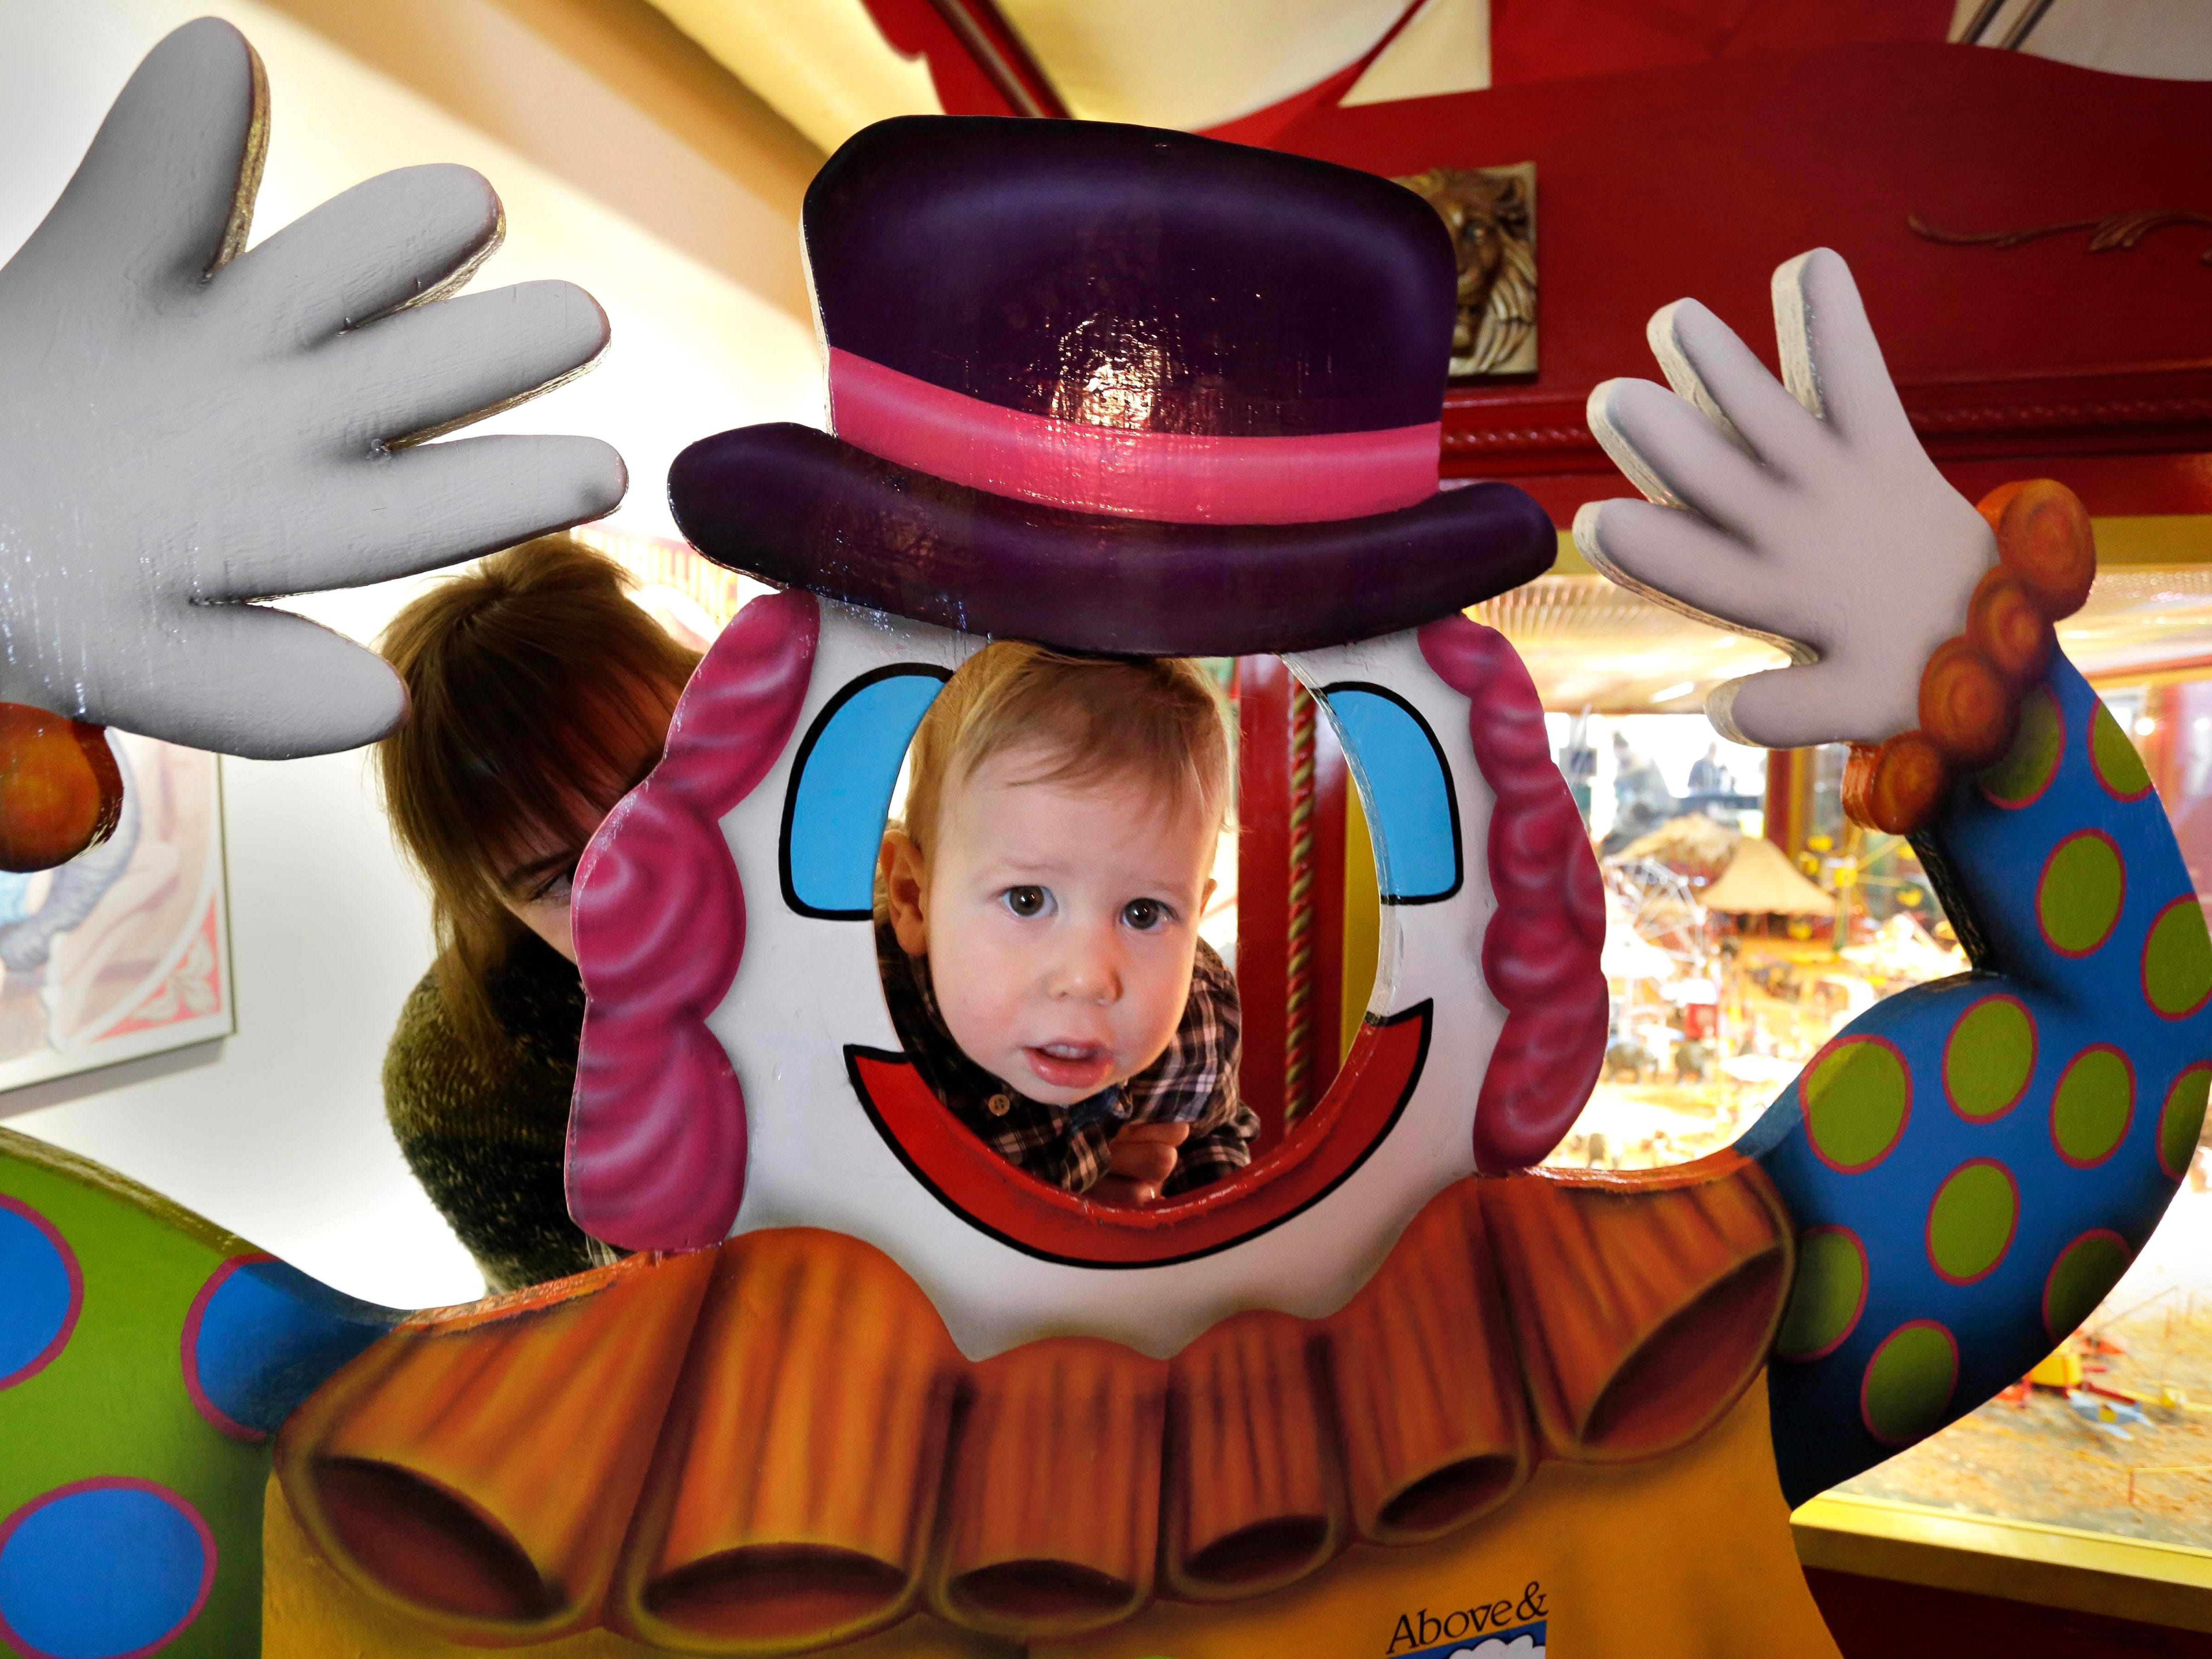 Thomas Lampe, 1, peers through a clown cutout at the Above and Beyond Children's Museum during Facepaint Friday, Friday, January 19, 2018 in Sheboygan, Wis.